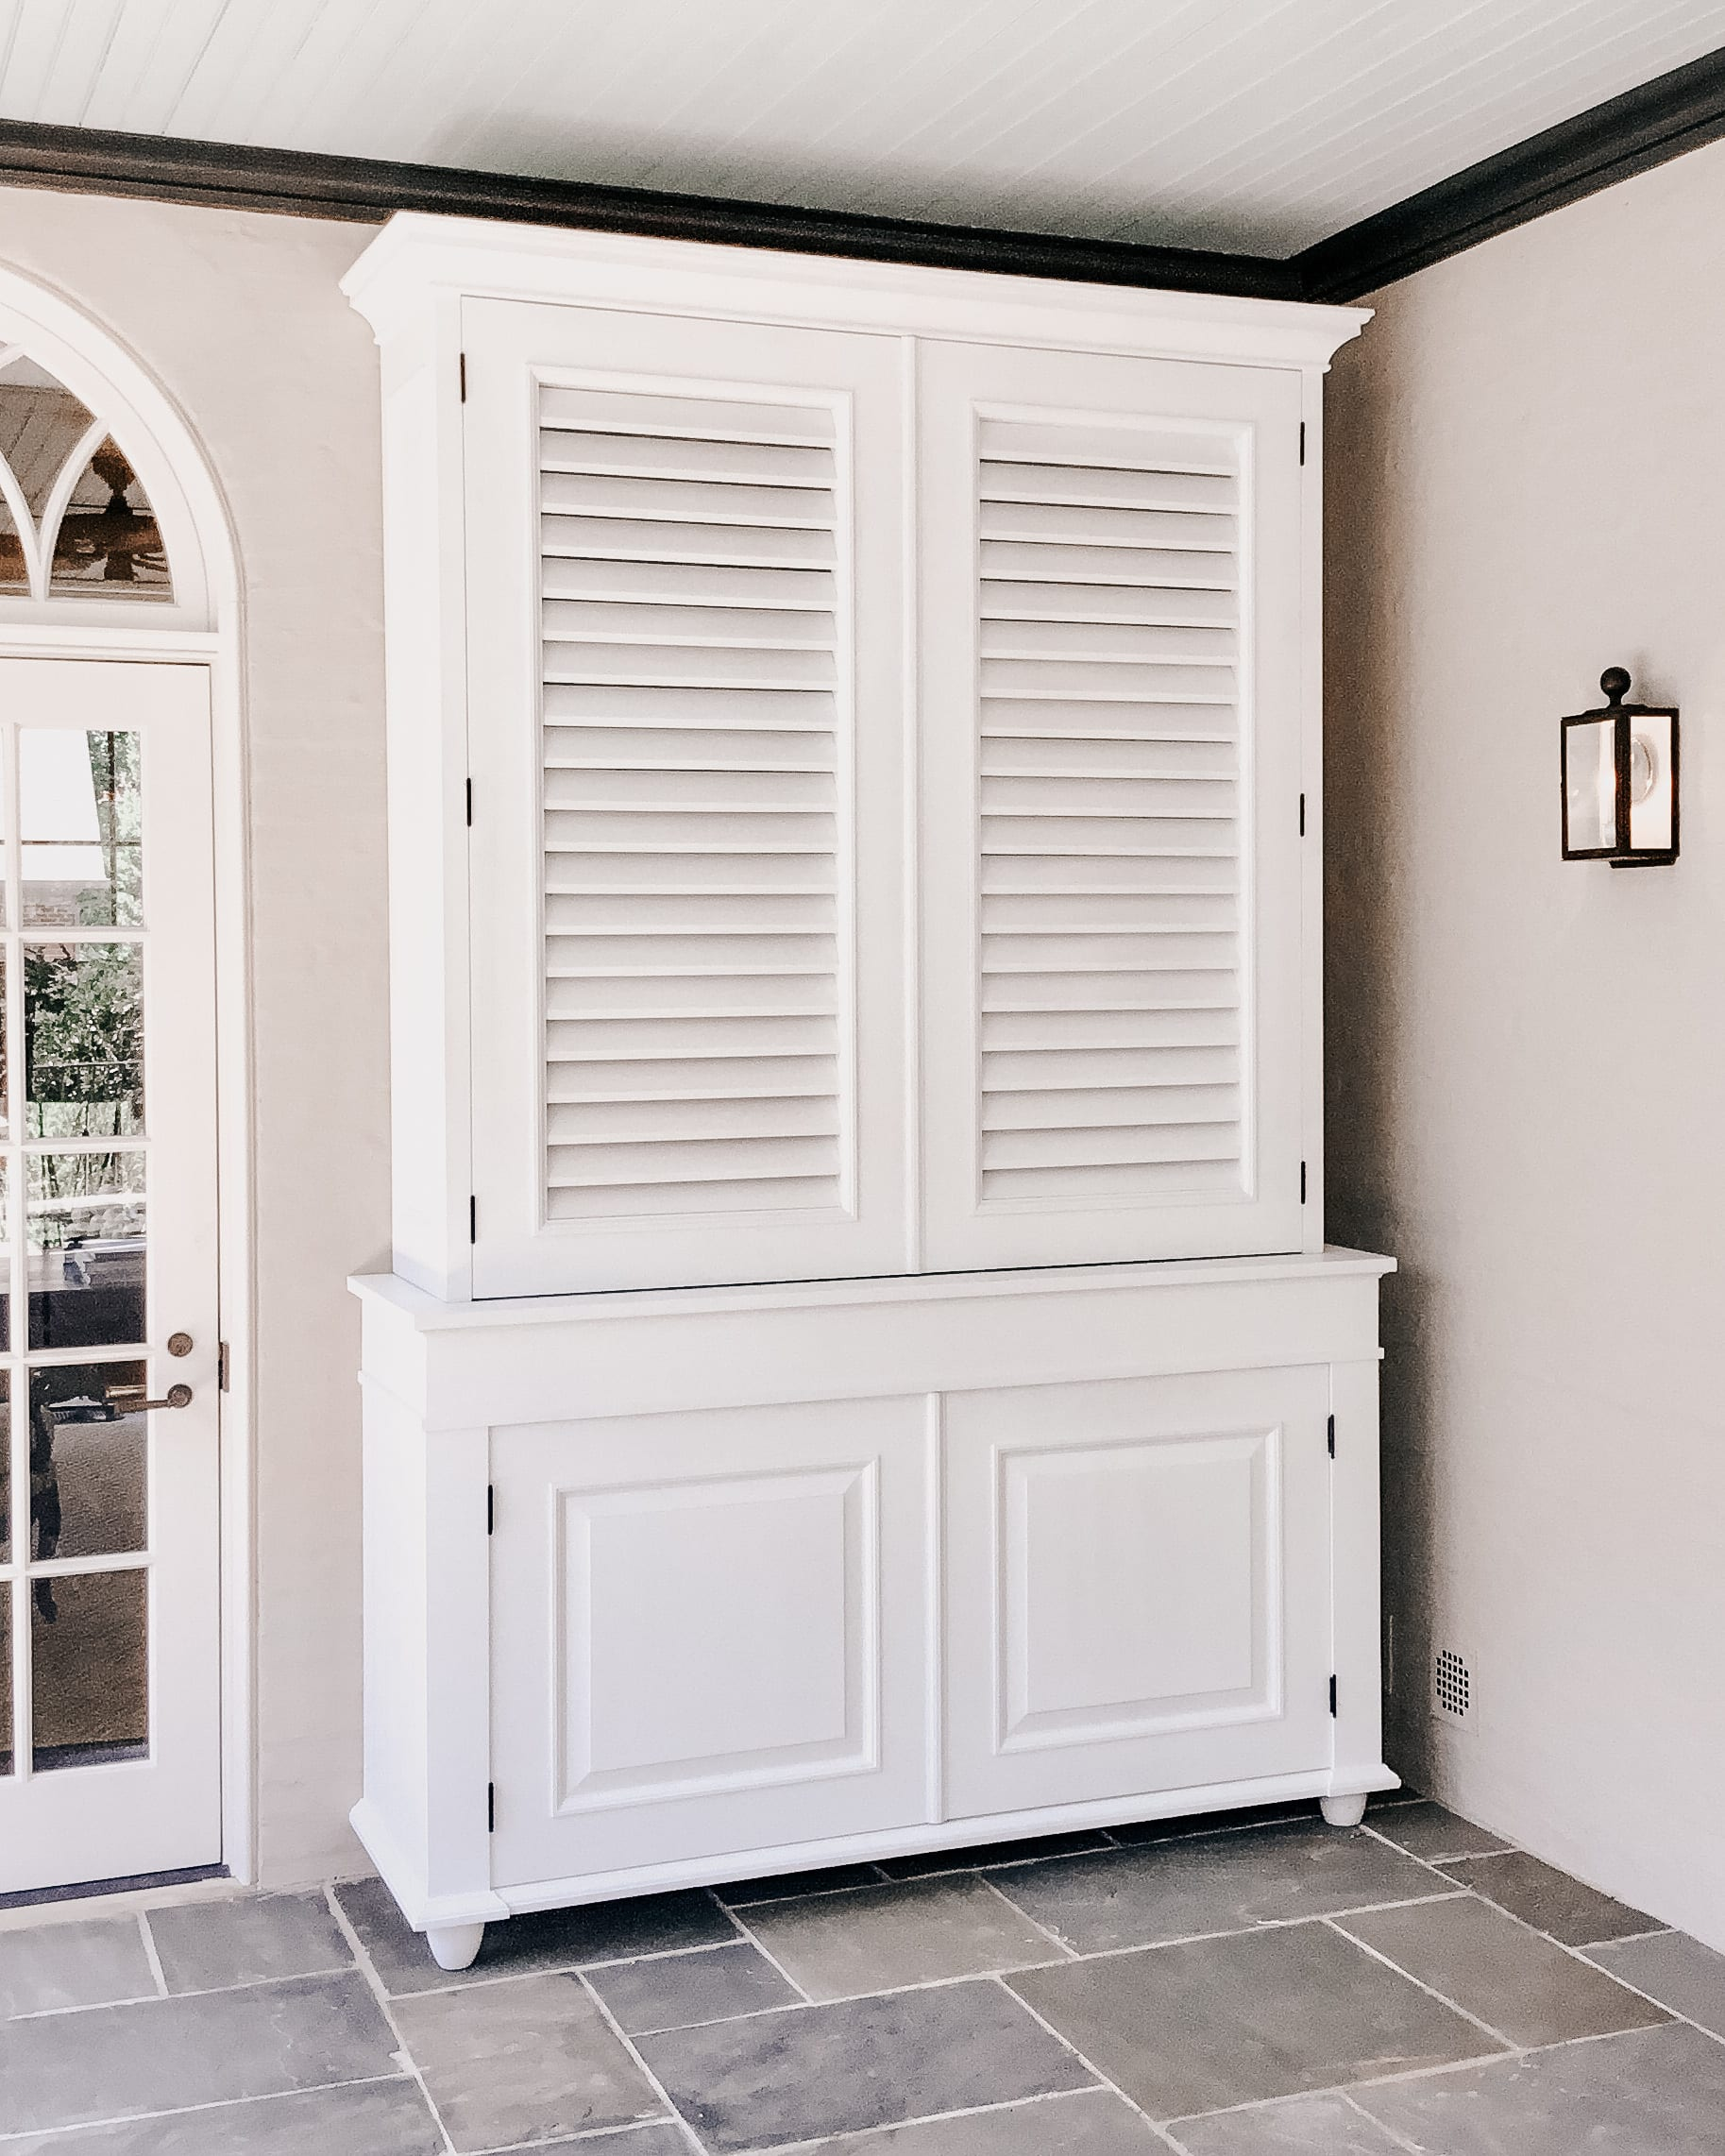 White Storage Cabinet with front panels